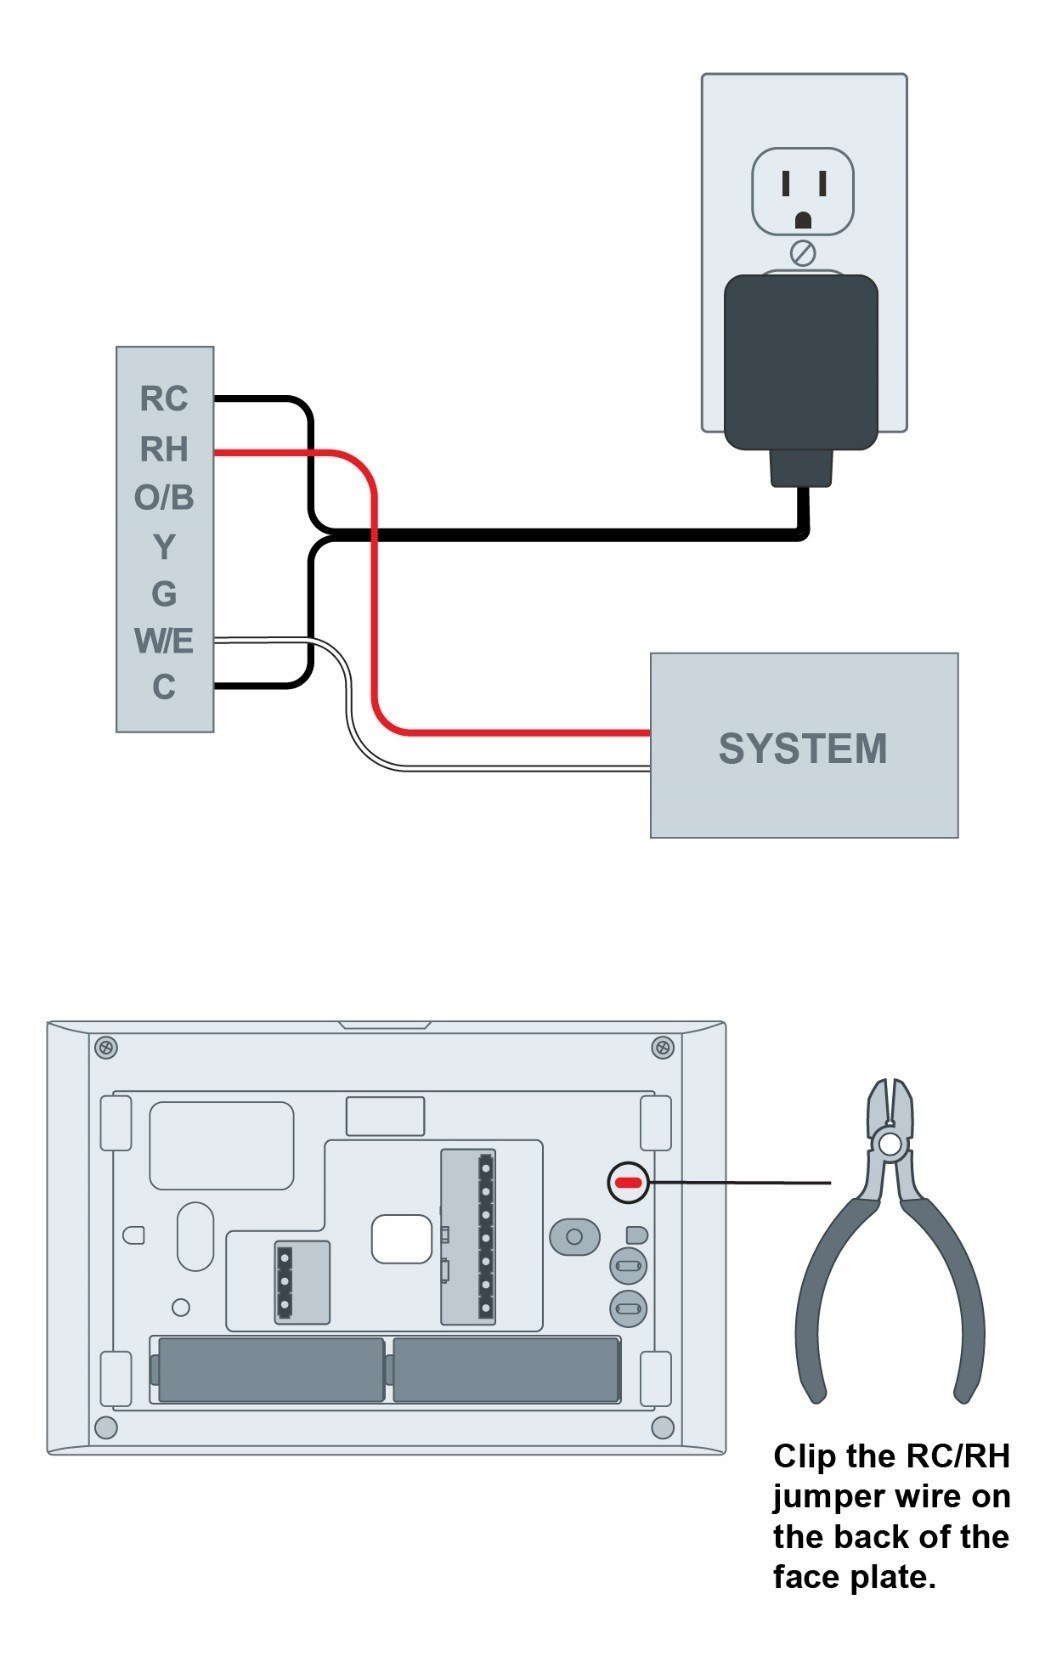 Adding A 24 Vac External Transformer: A Diy Option For Heat-Only - Nest Wiring Diagram Rc Or Rh